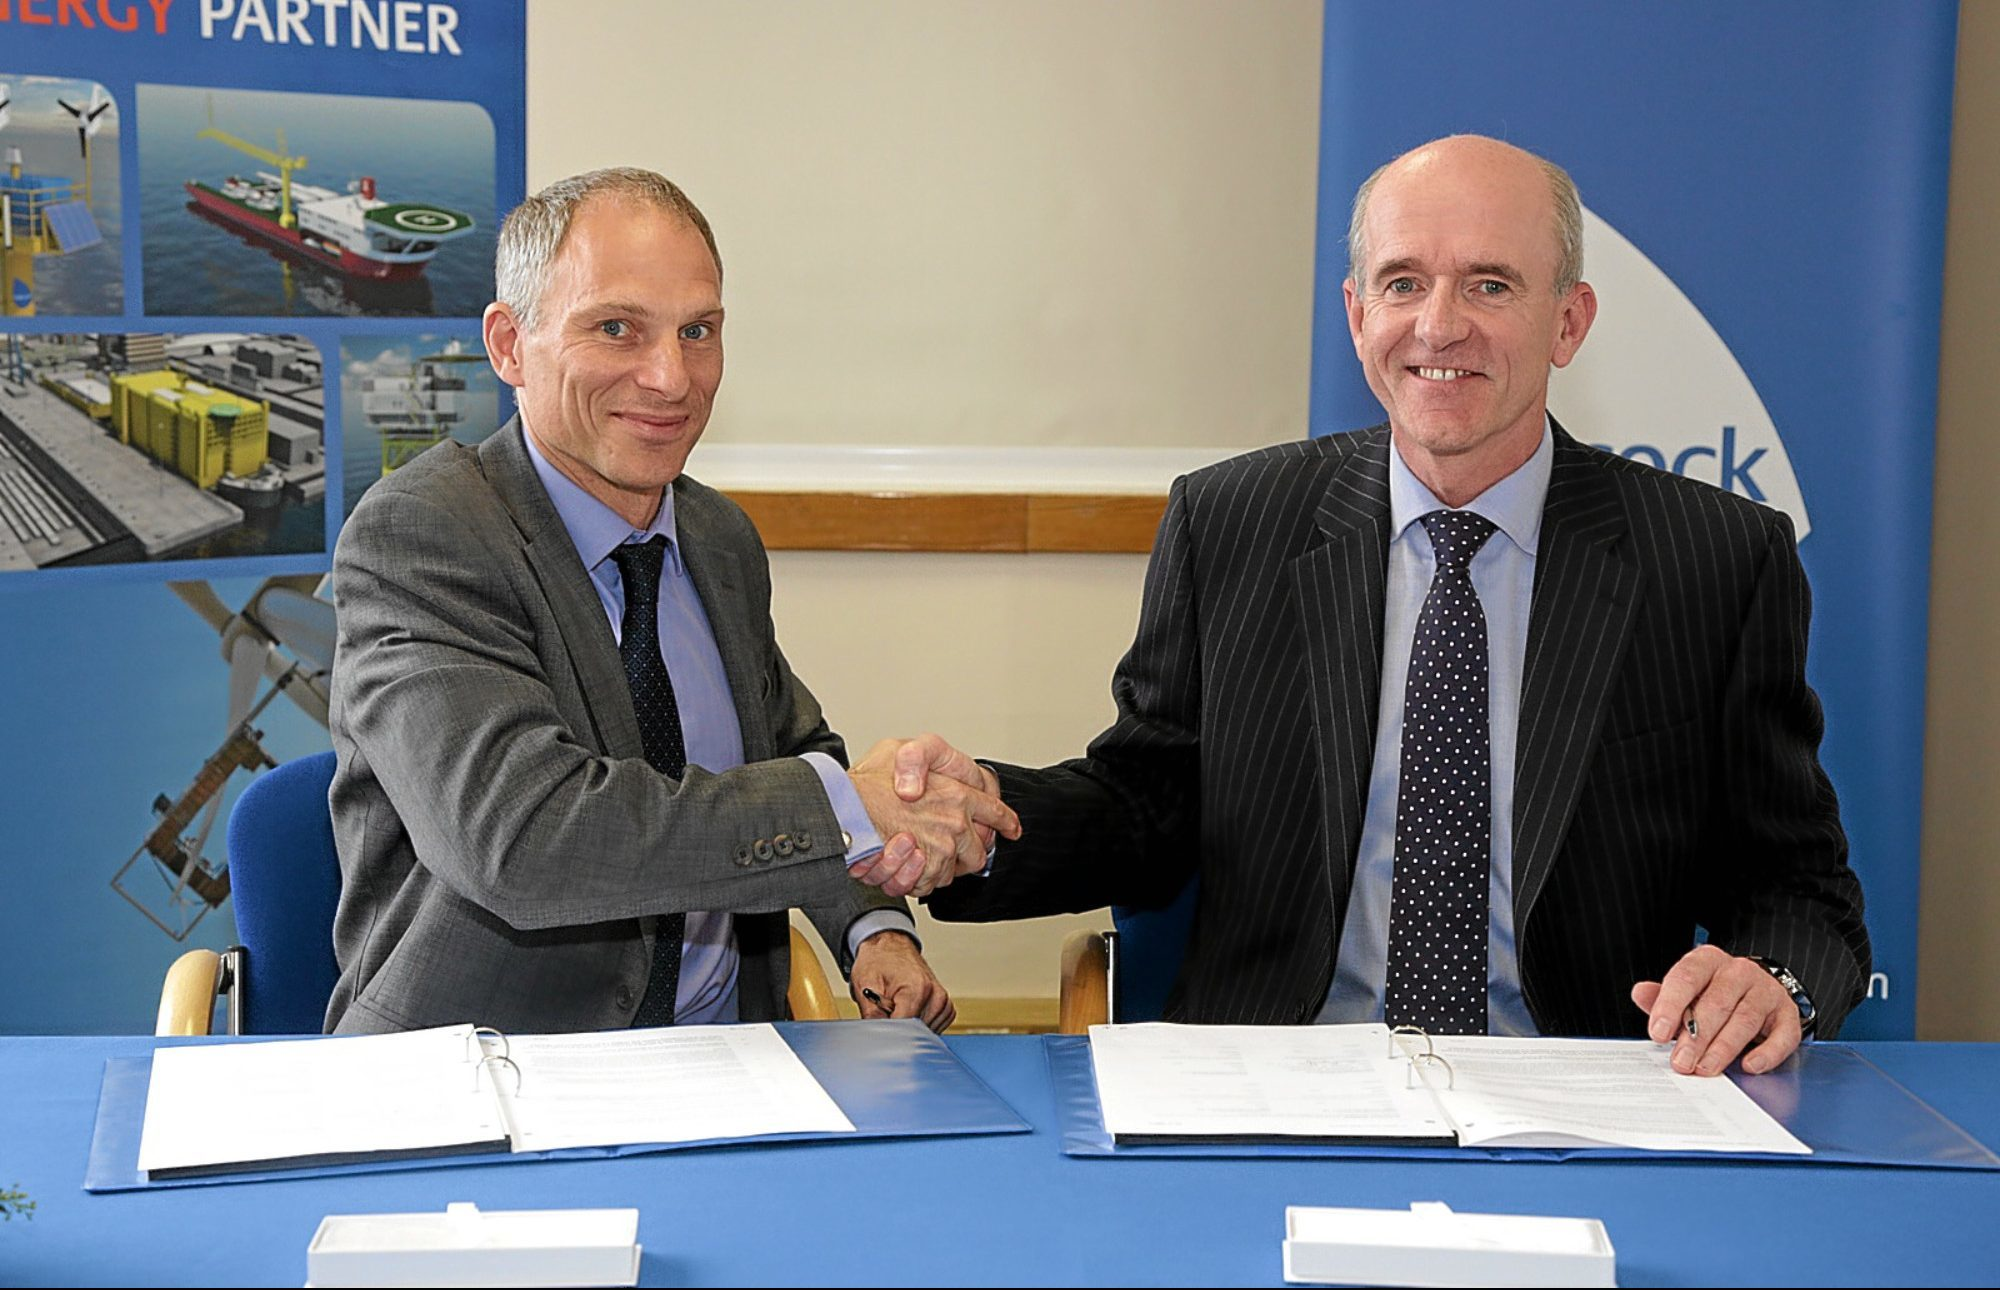 Duncan Clark (left), Programme Director for Hornsea and Ian Donnelly (right), Managing Director of Babcocks energy and marine business sign supply contract for reactive compensation station.